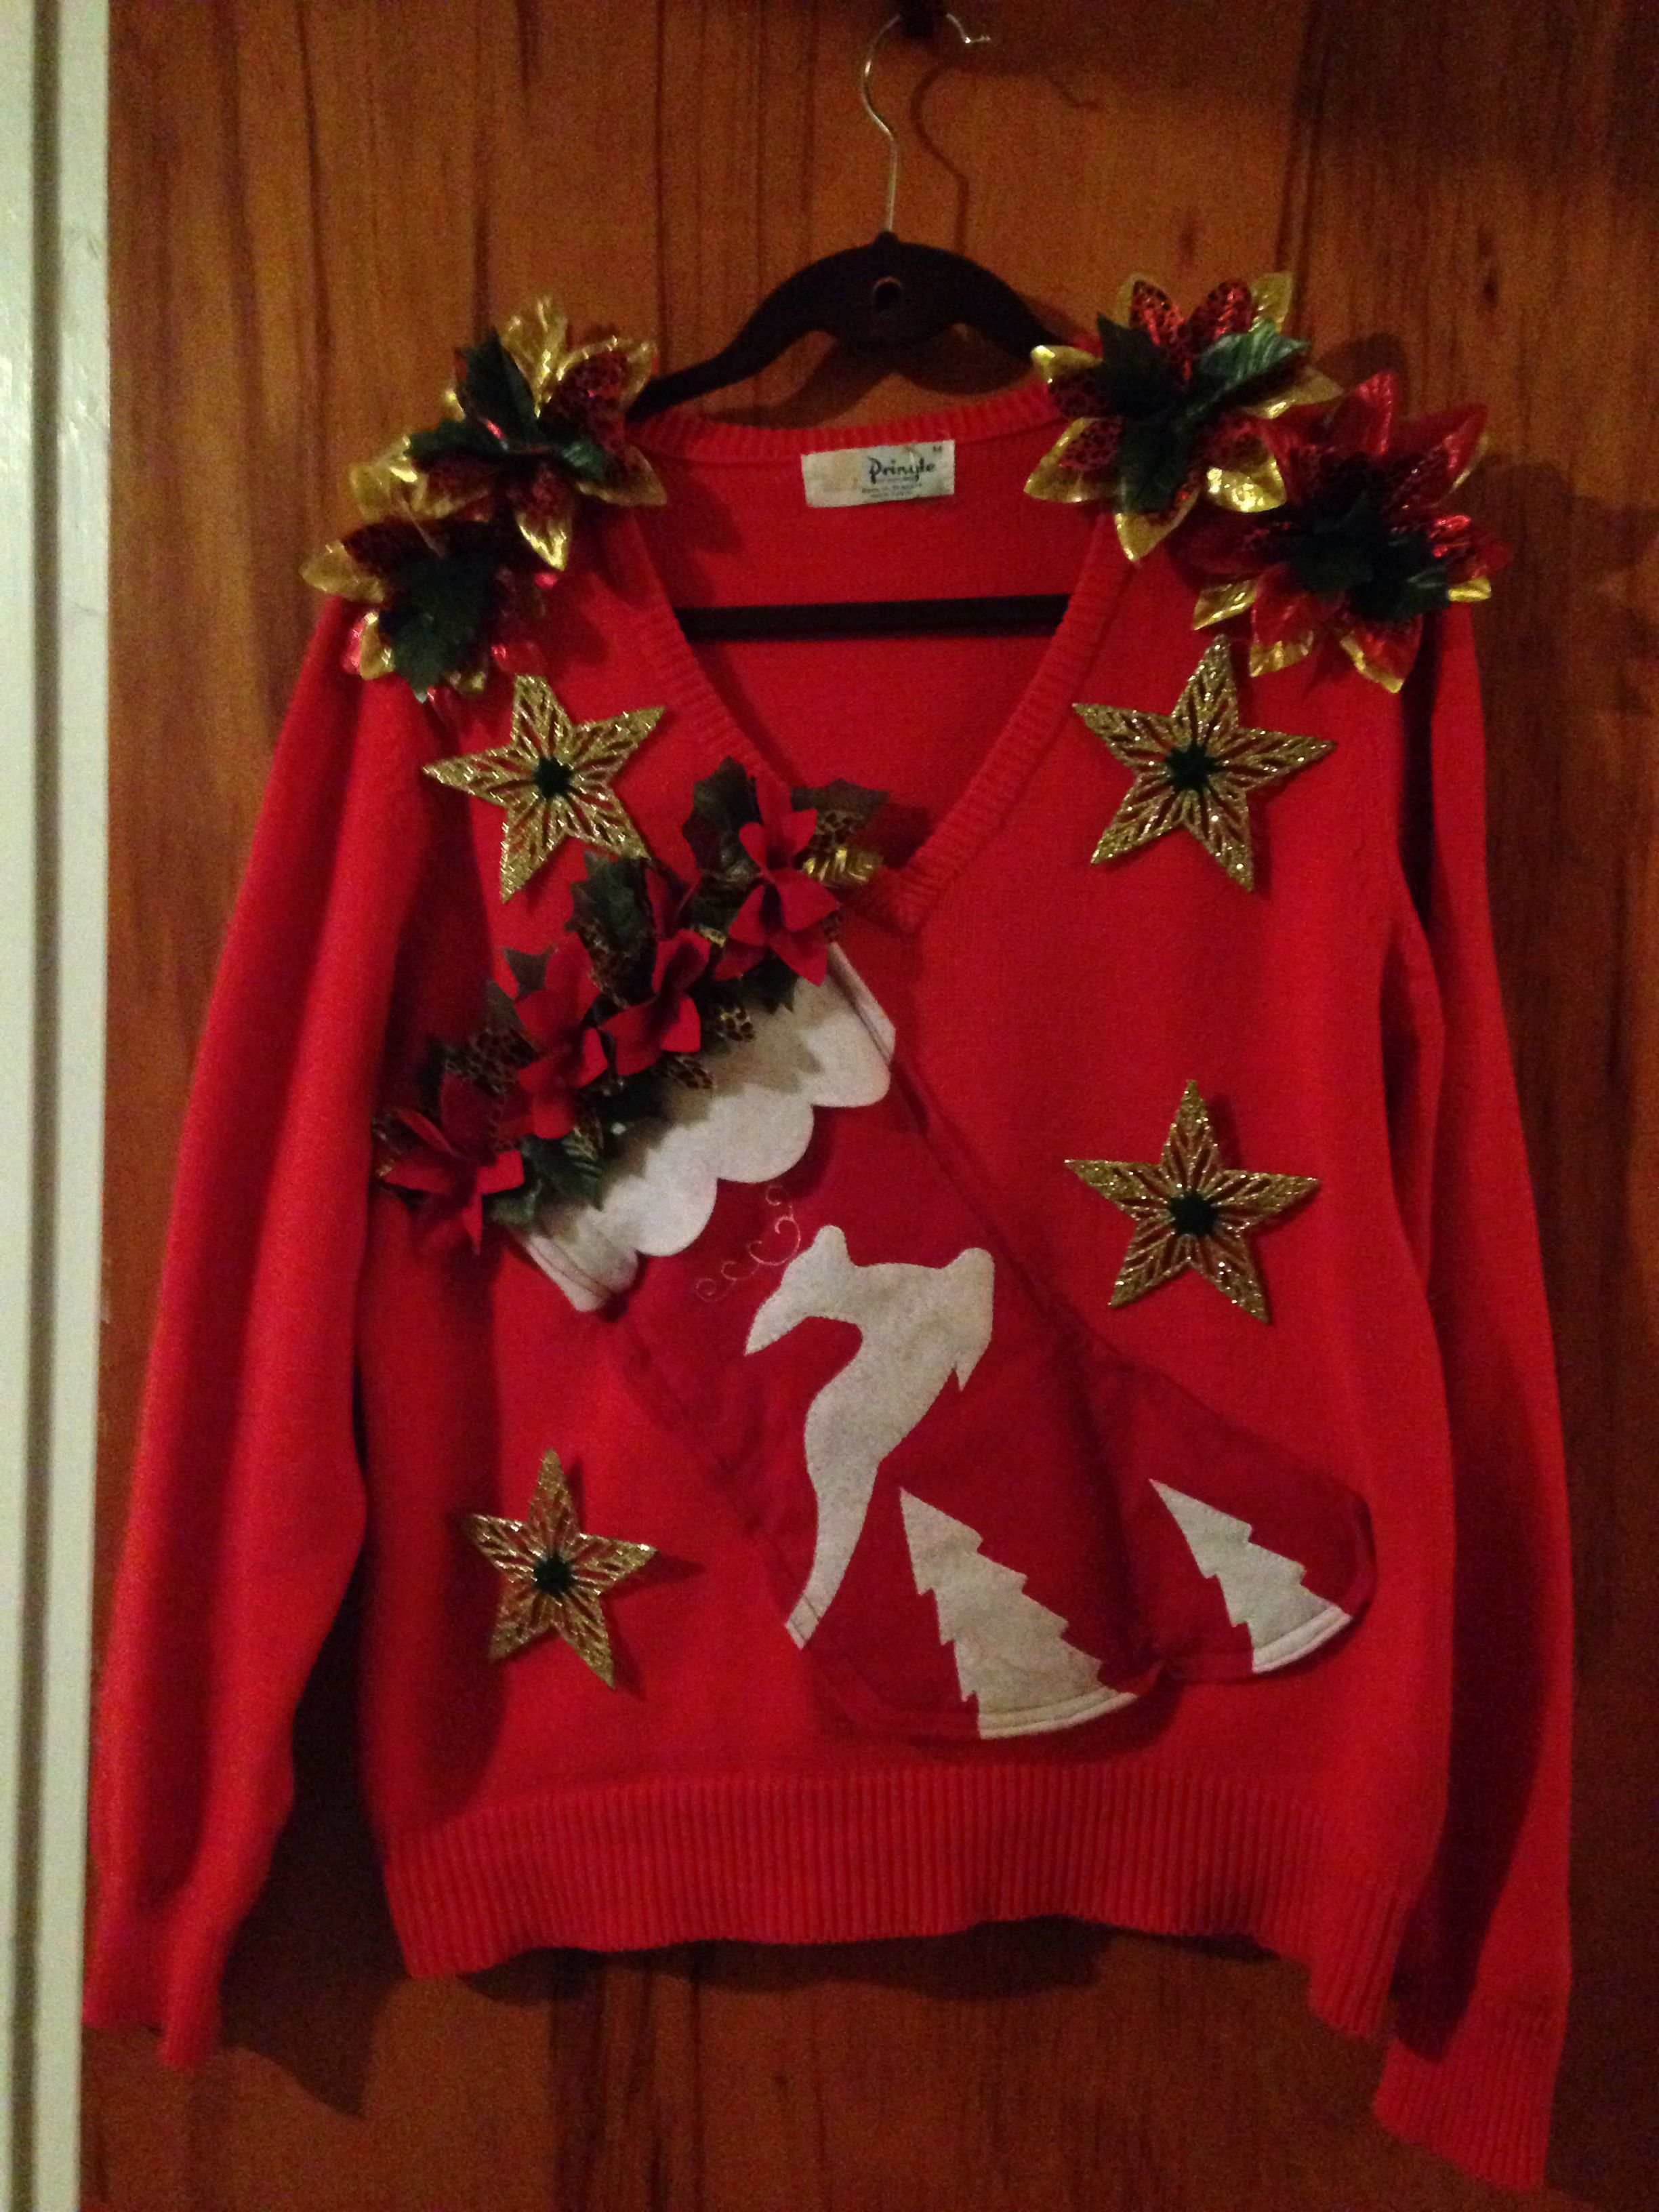 15 Do It Yourself Ugly Christmas Sweaters The Ugly Christmas Sweater Party has become a HUGE trend and fun way to celebrate the holiday season! We all loved our 80's Christmas sweaters {I owned my share} feeling very stylish back then haha!